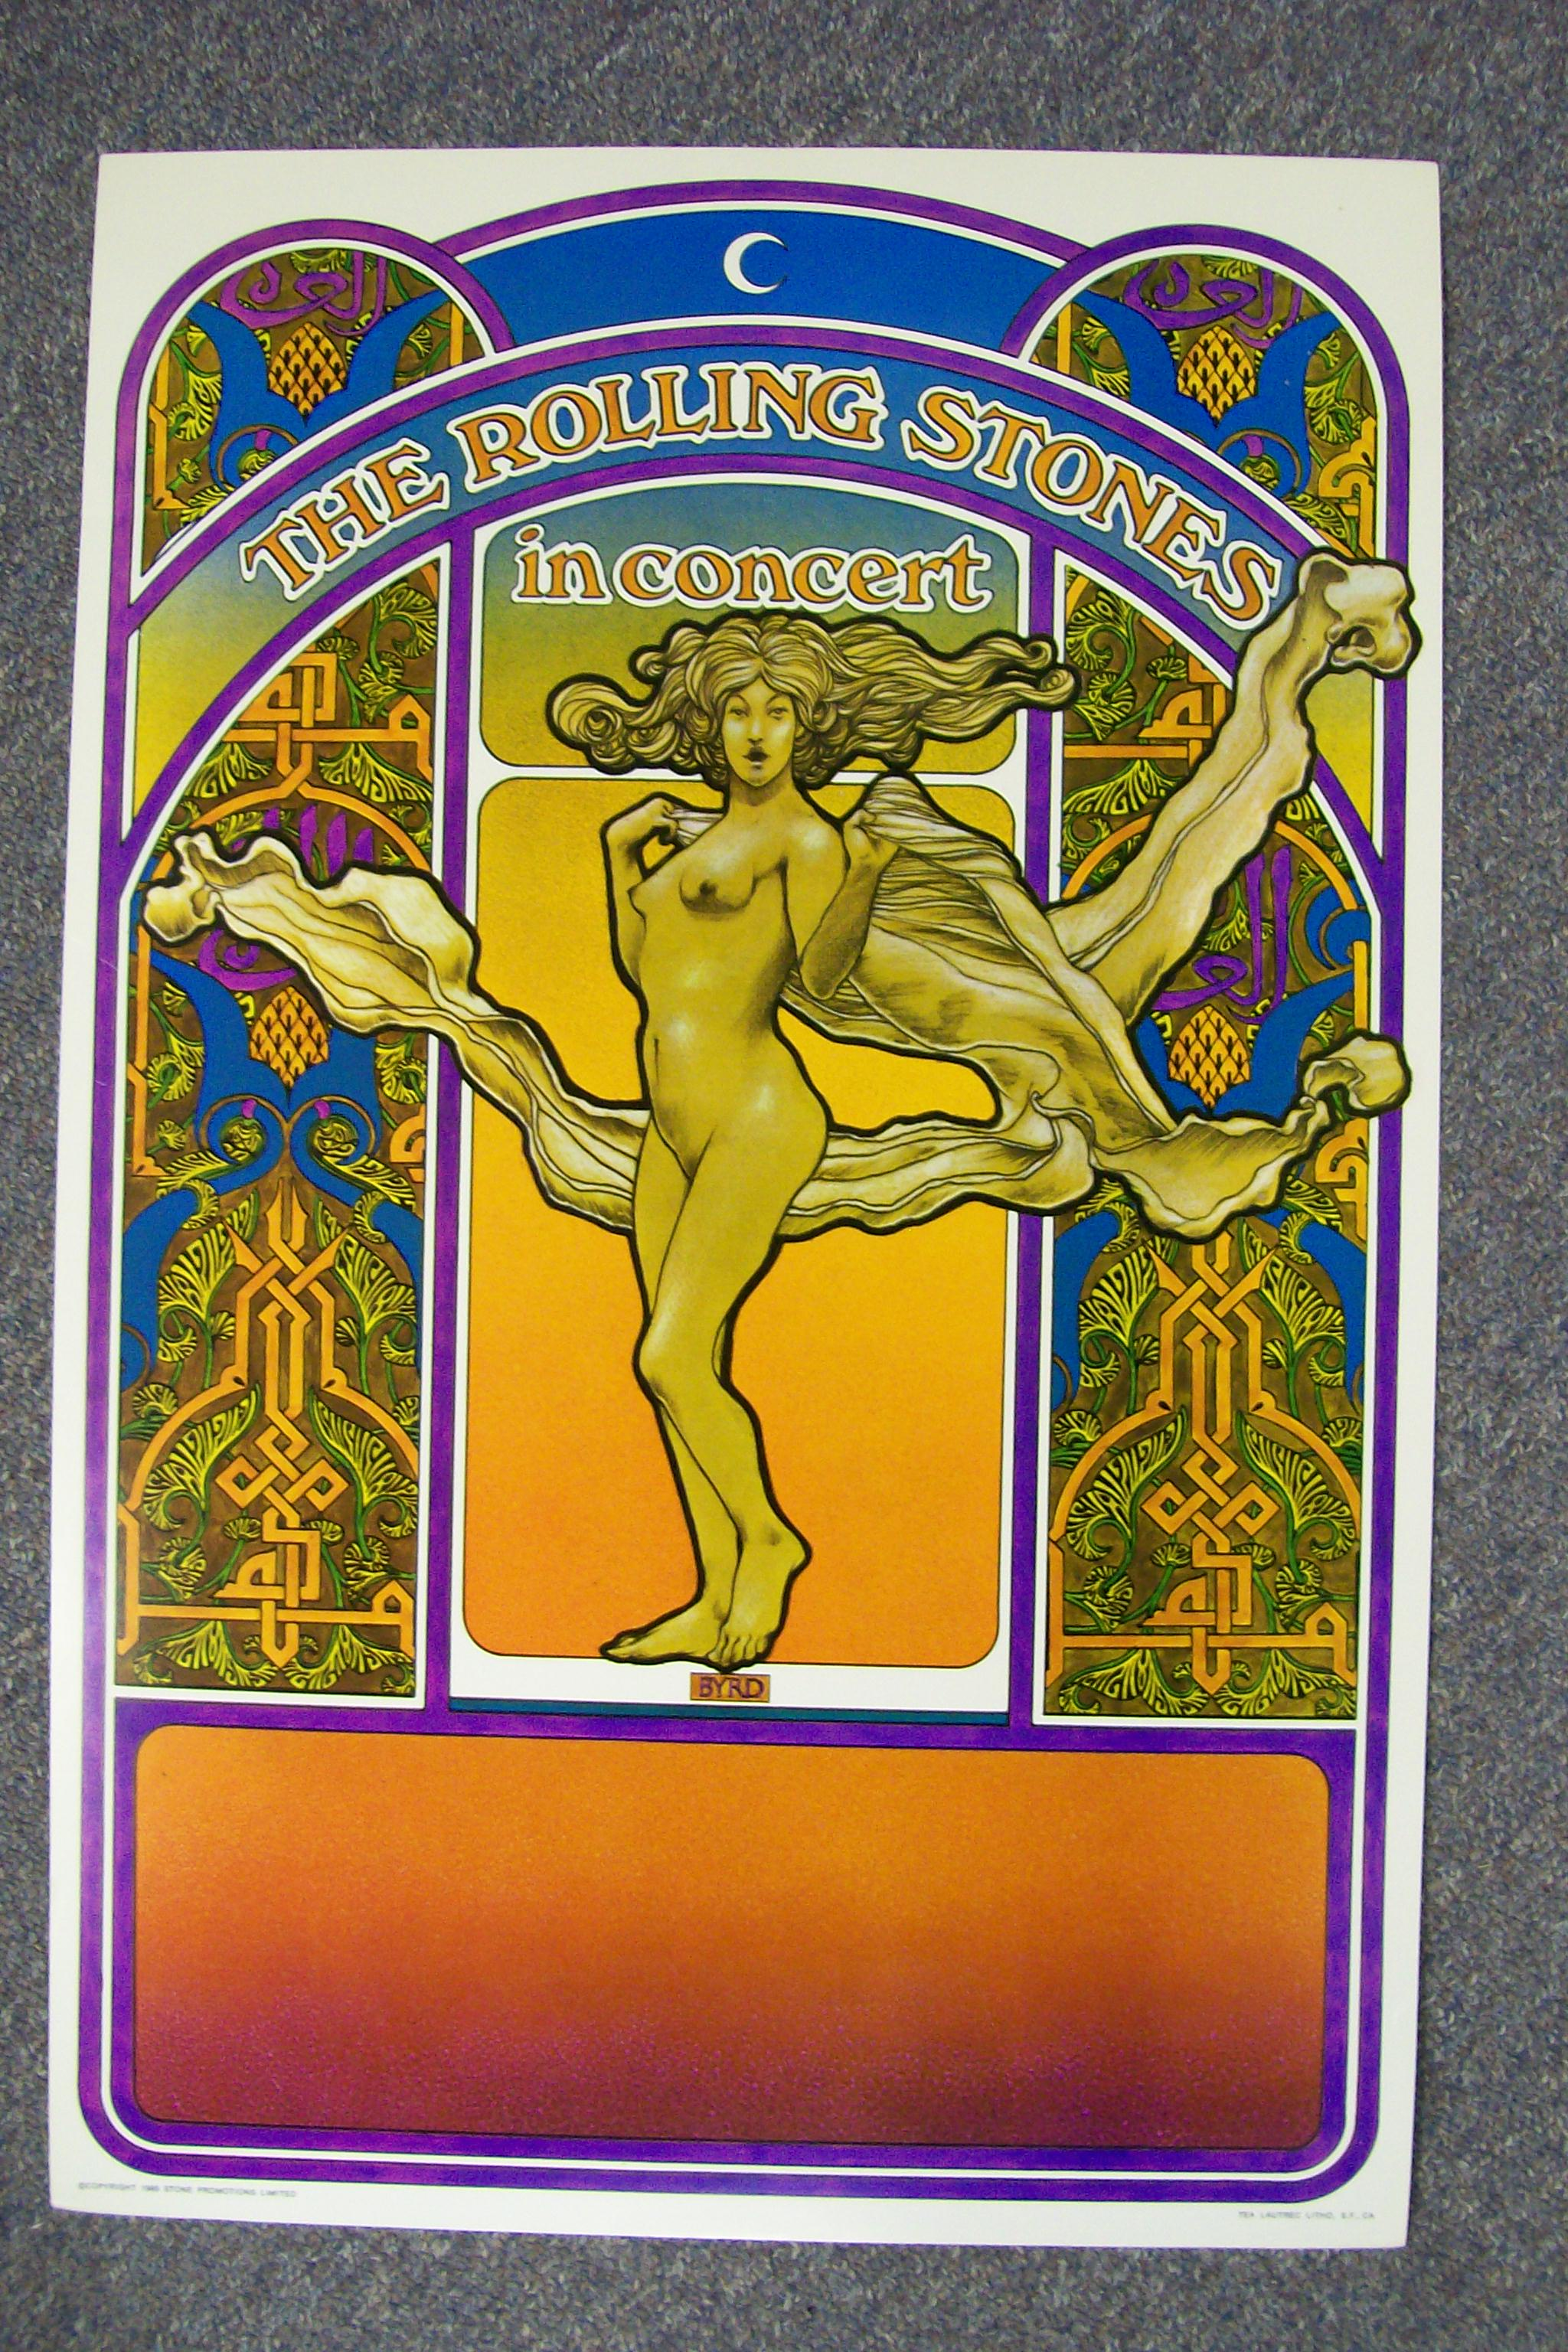 The Rolling Stones In Concert Promotial Poster 1969 Litho